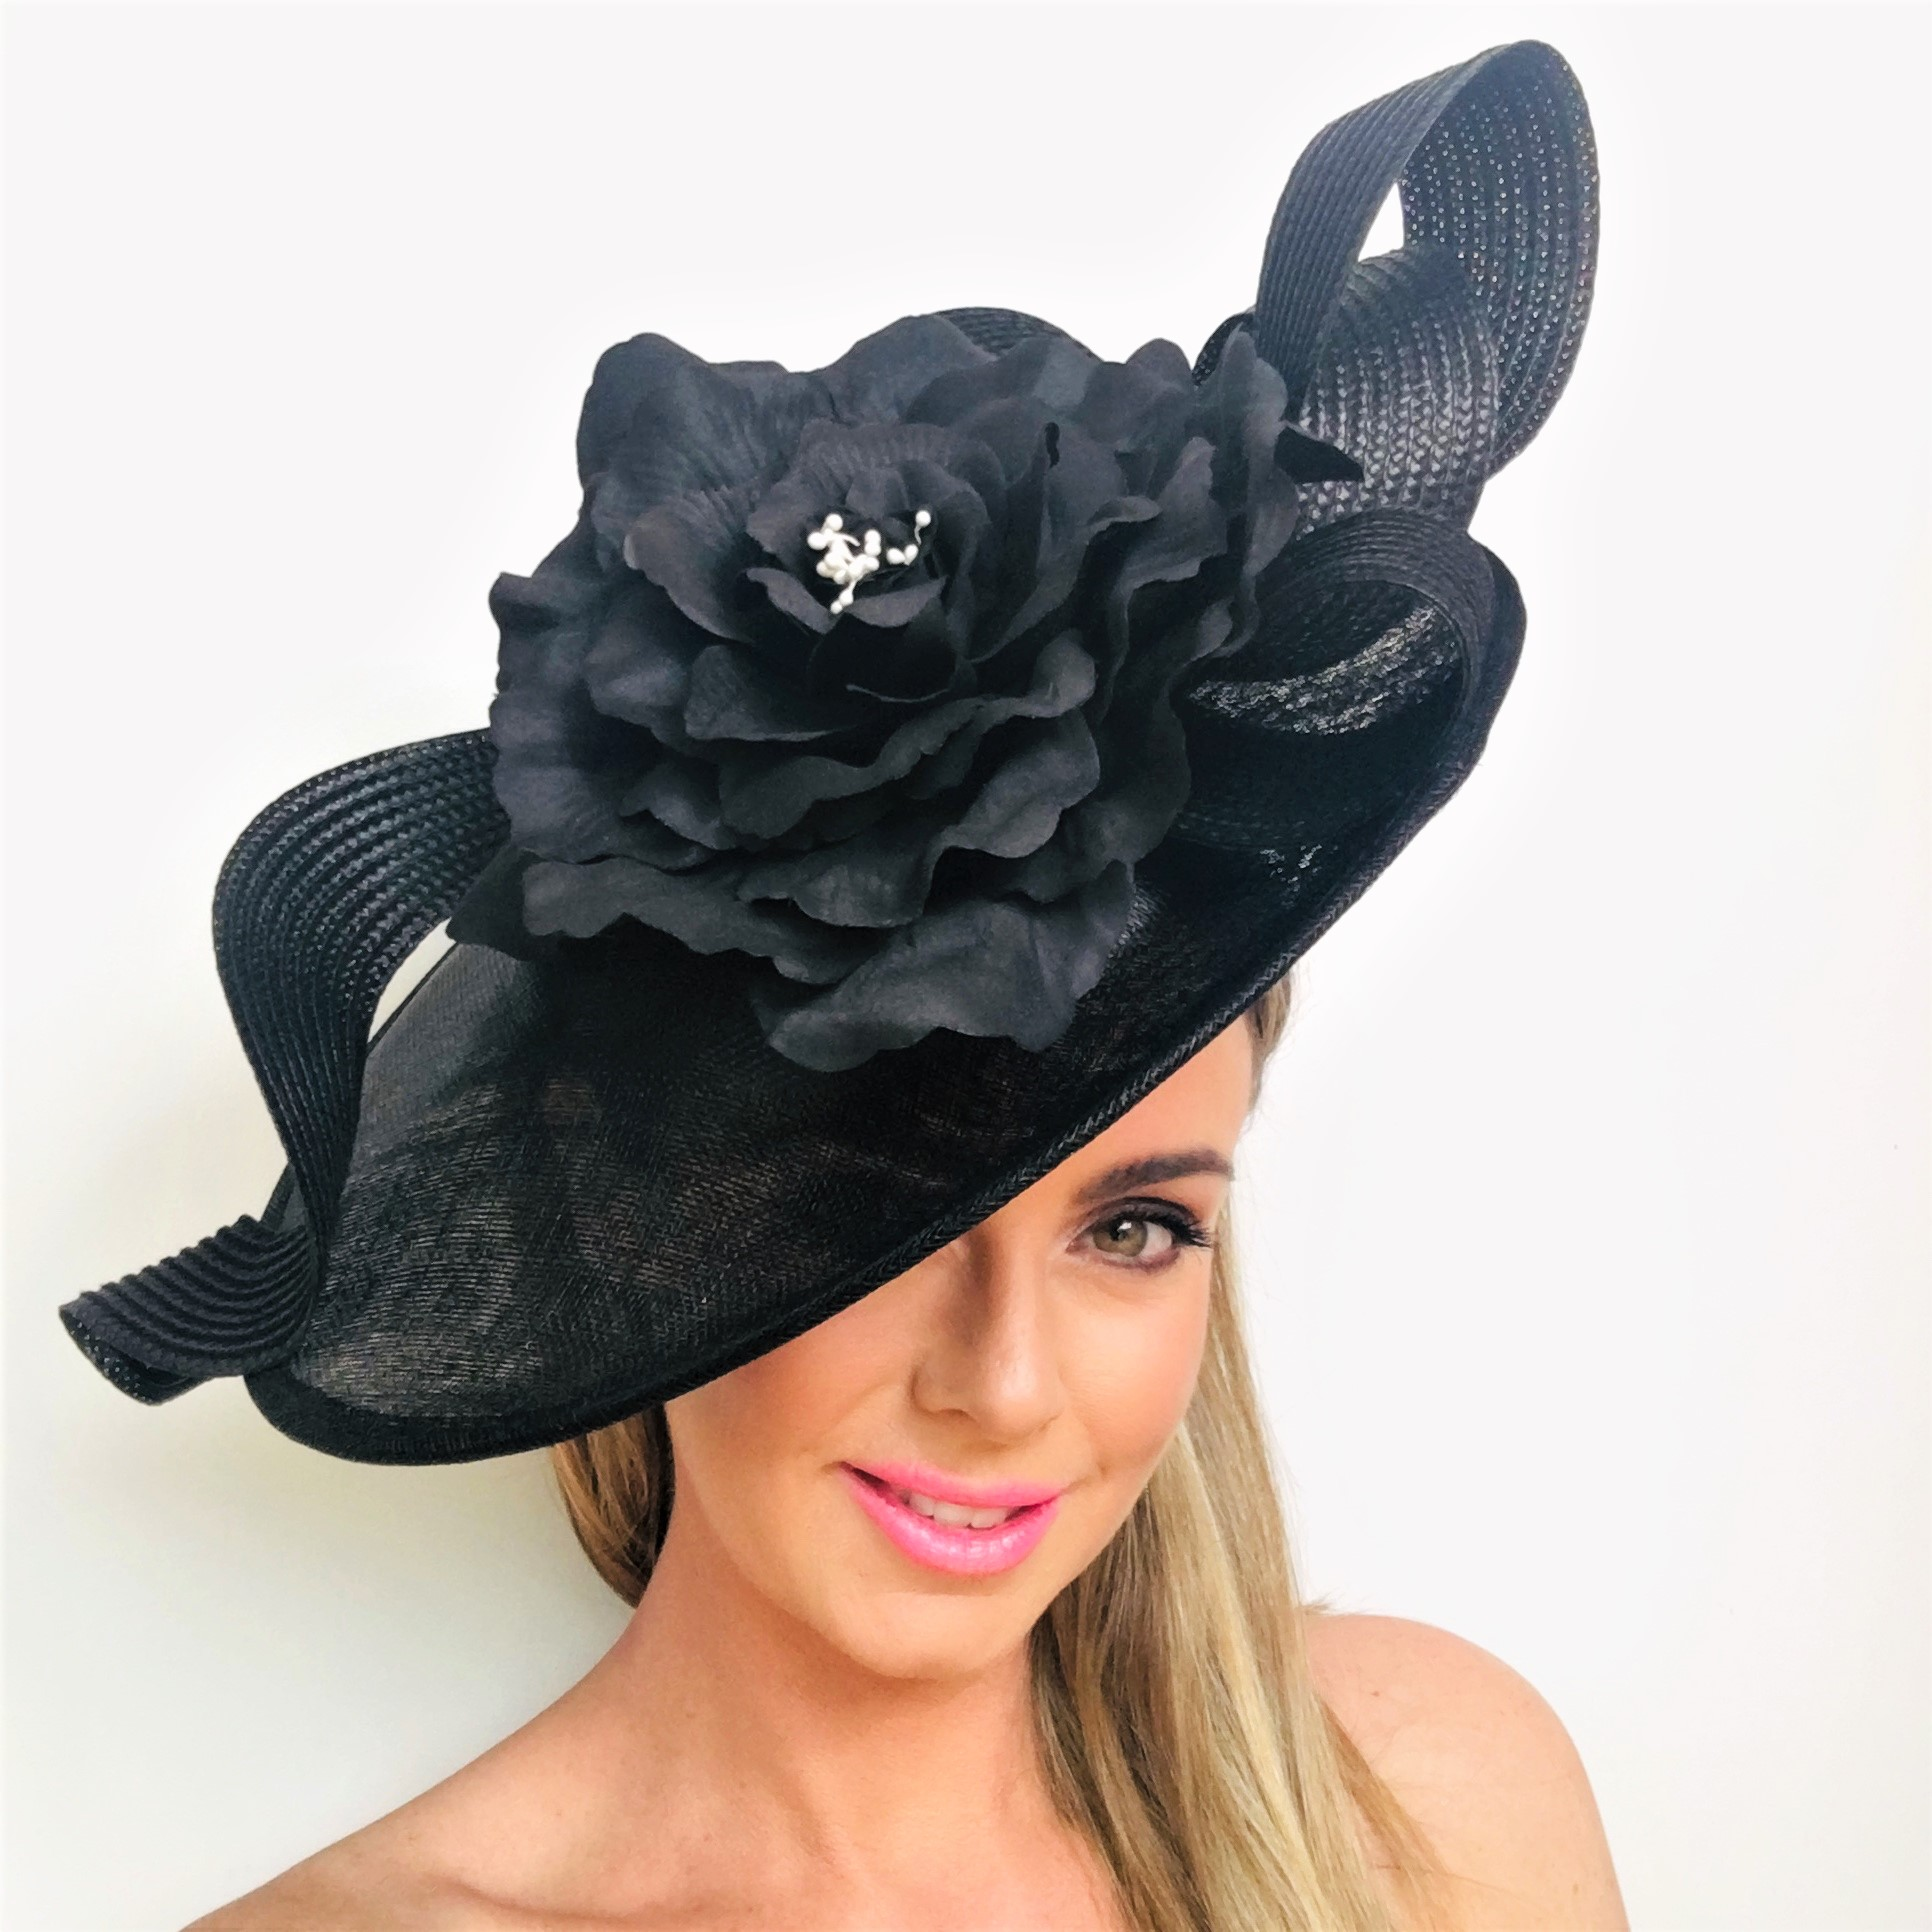 good service discount casual shoes Kentucky Derby Hats: What to buy in 2019? The first edition ...